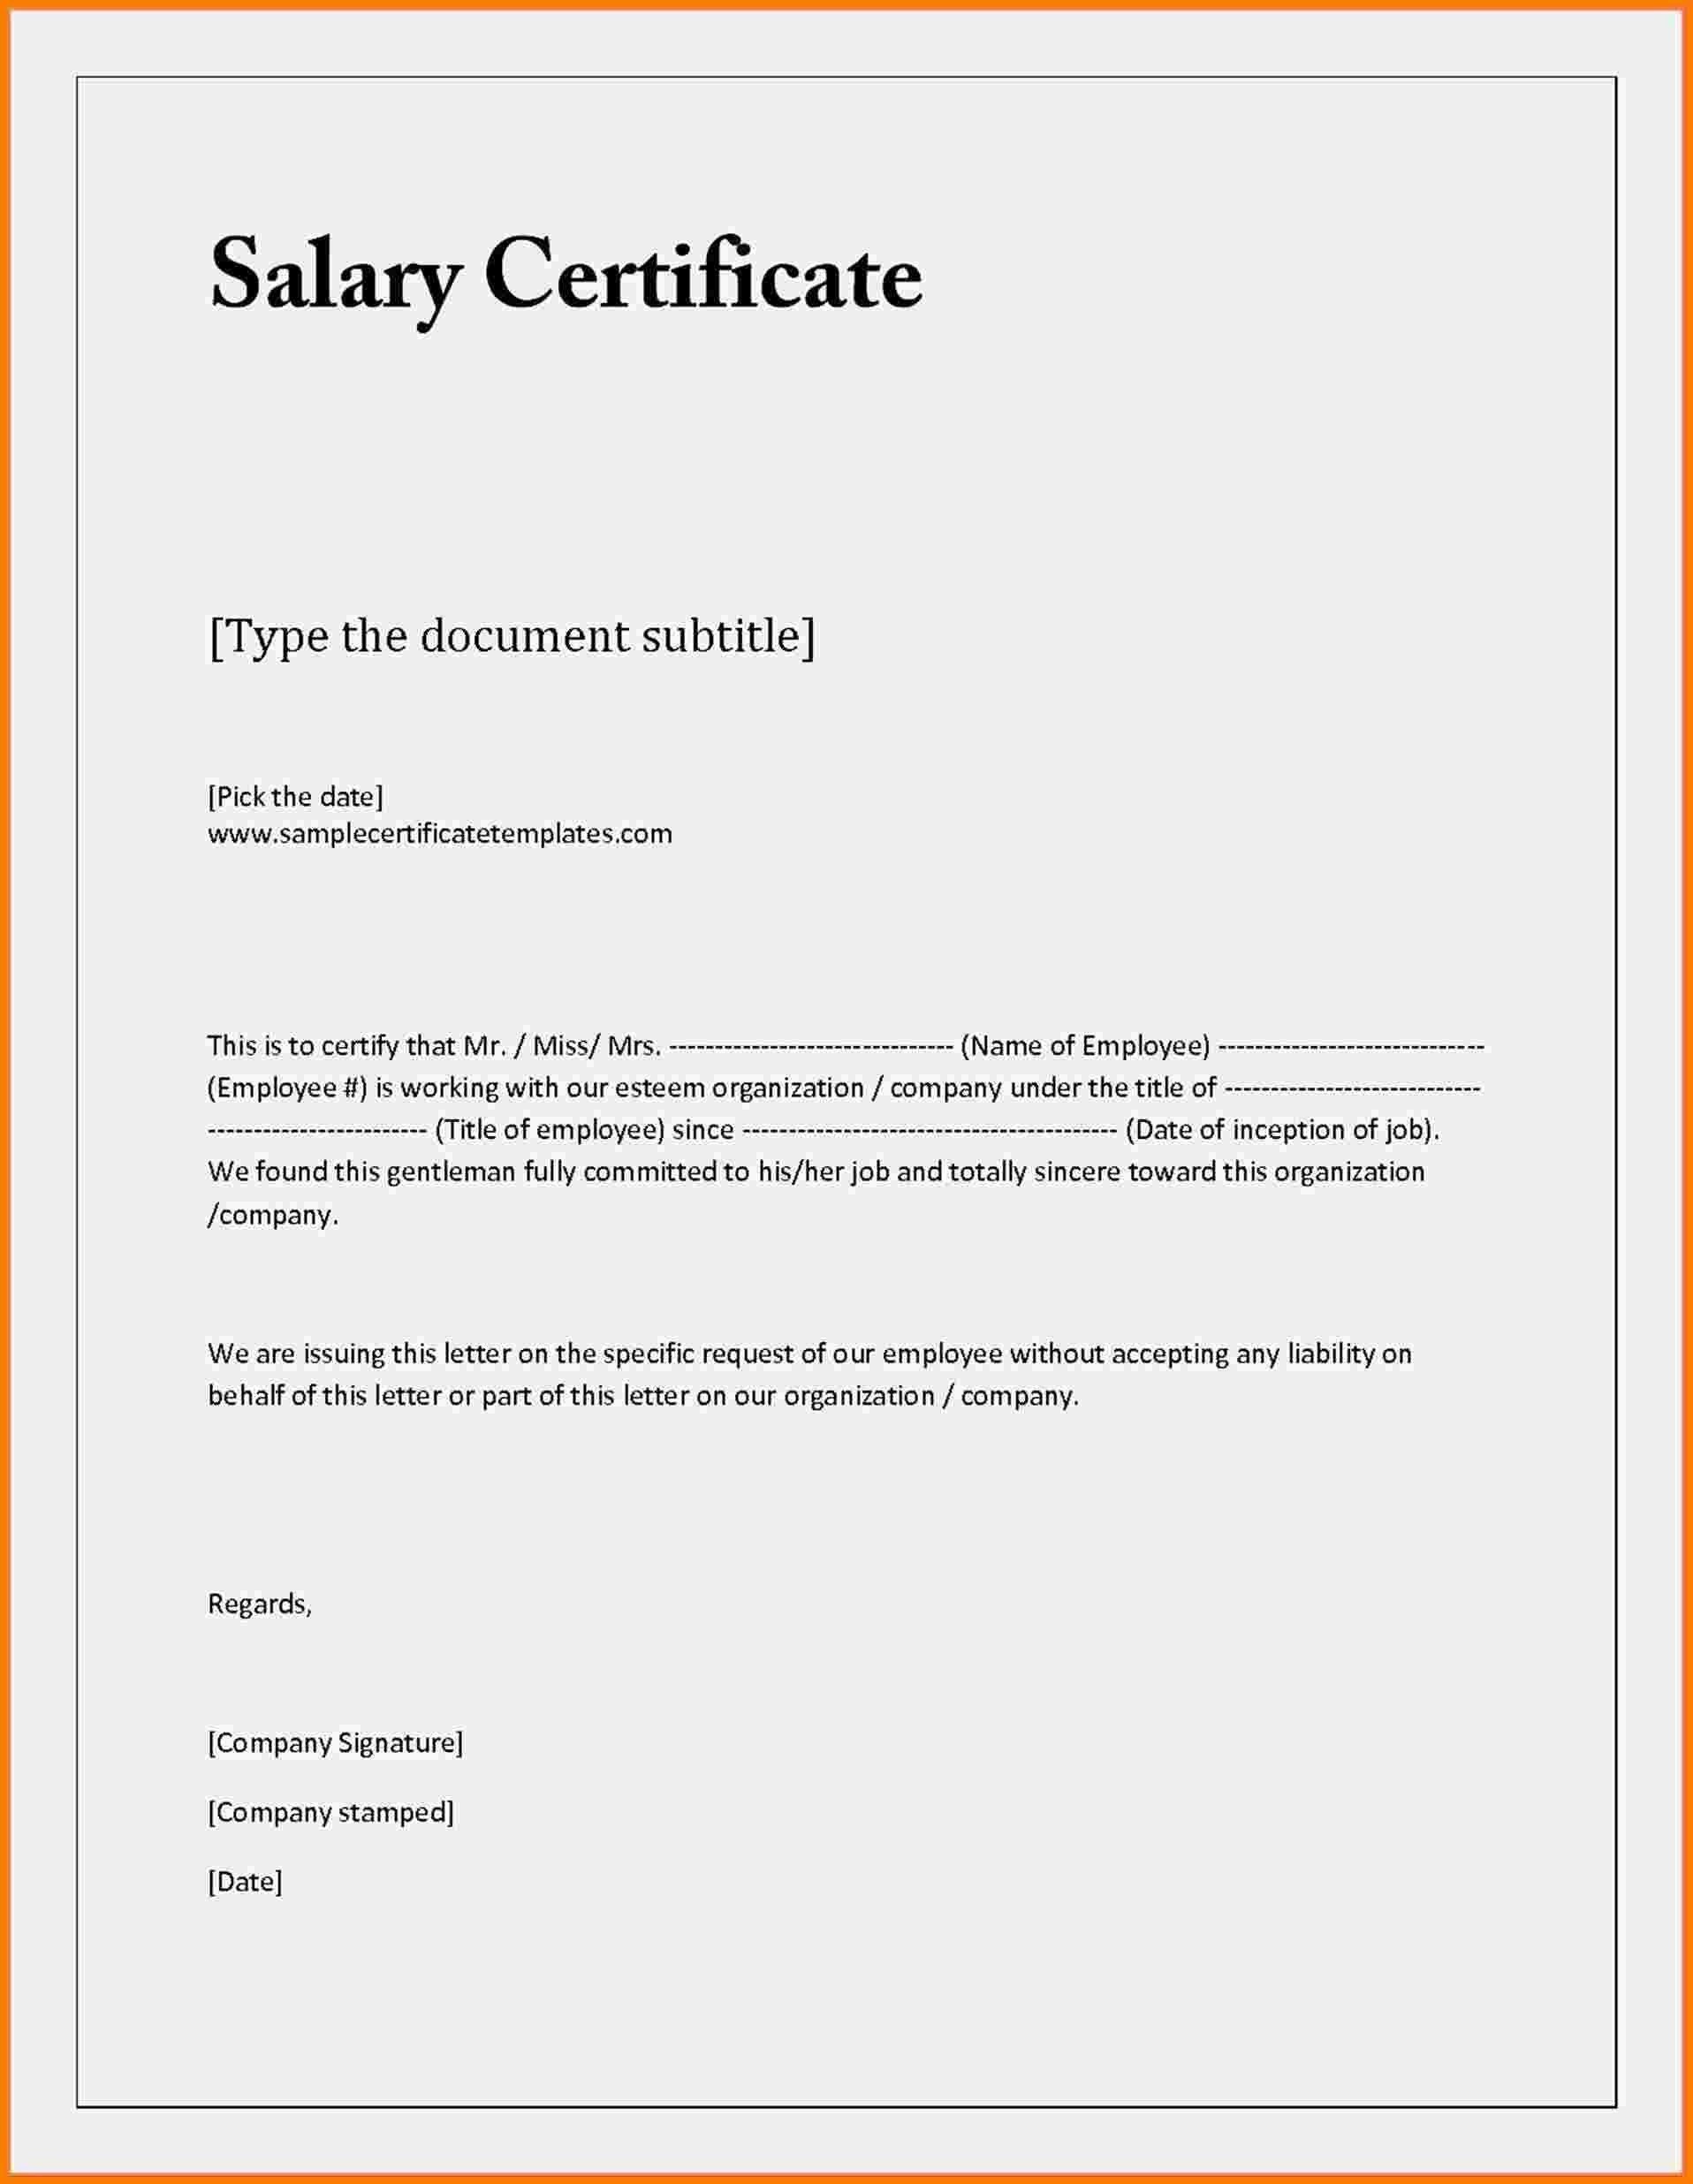 Employment Income Verification Letter Template - Sample Certificate Employment with Salary Indicated Best